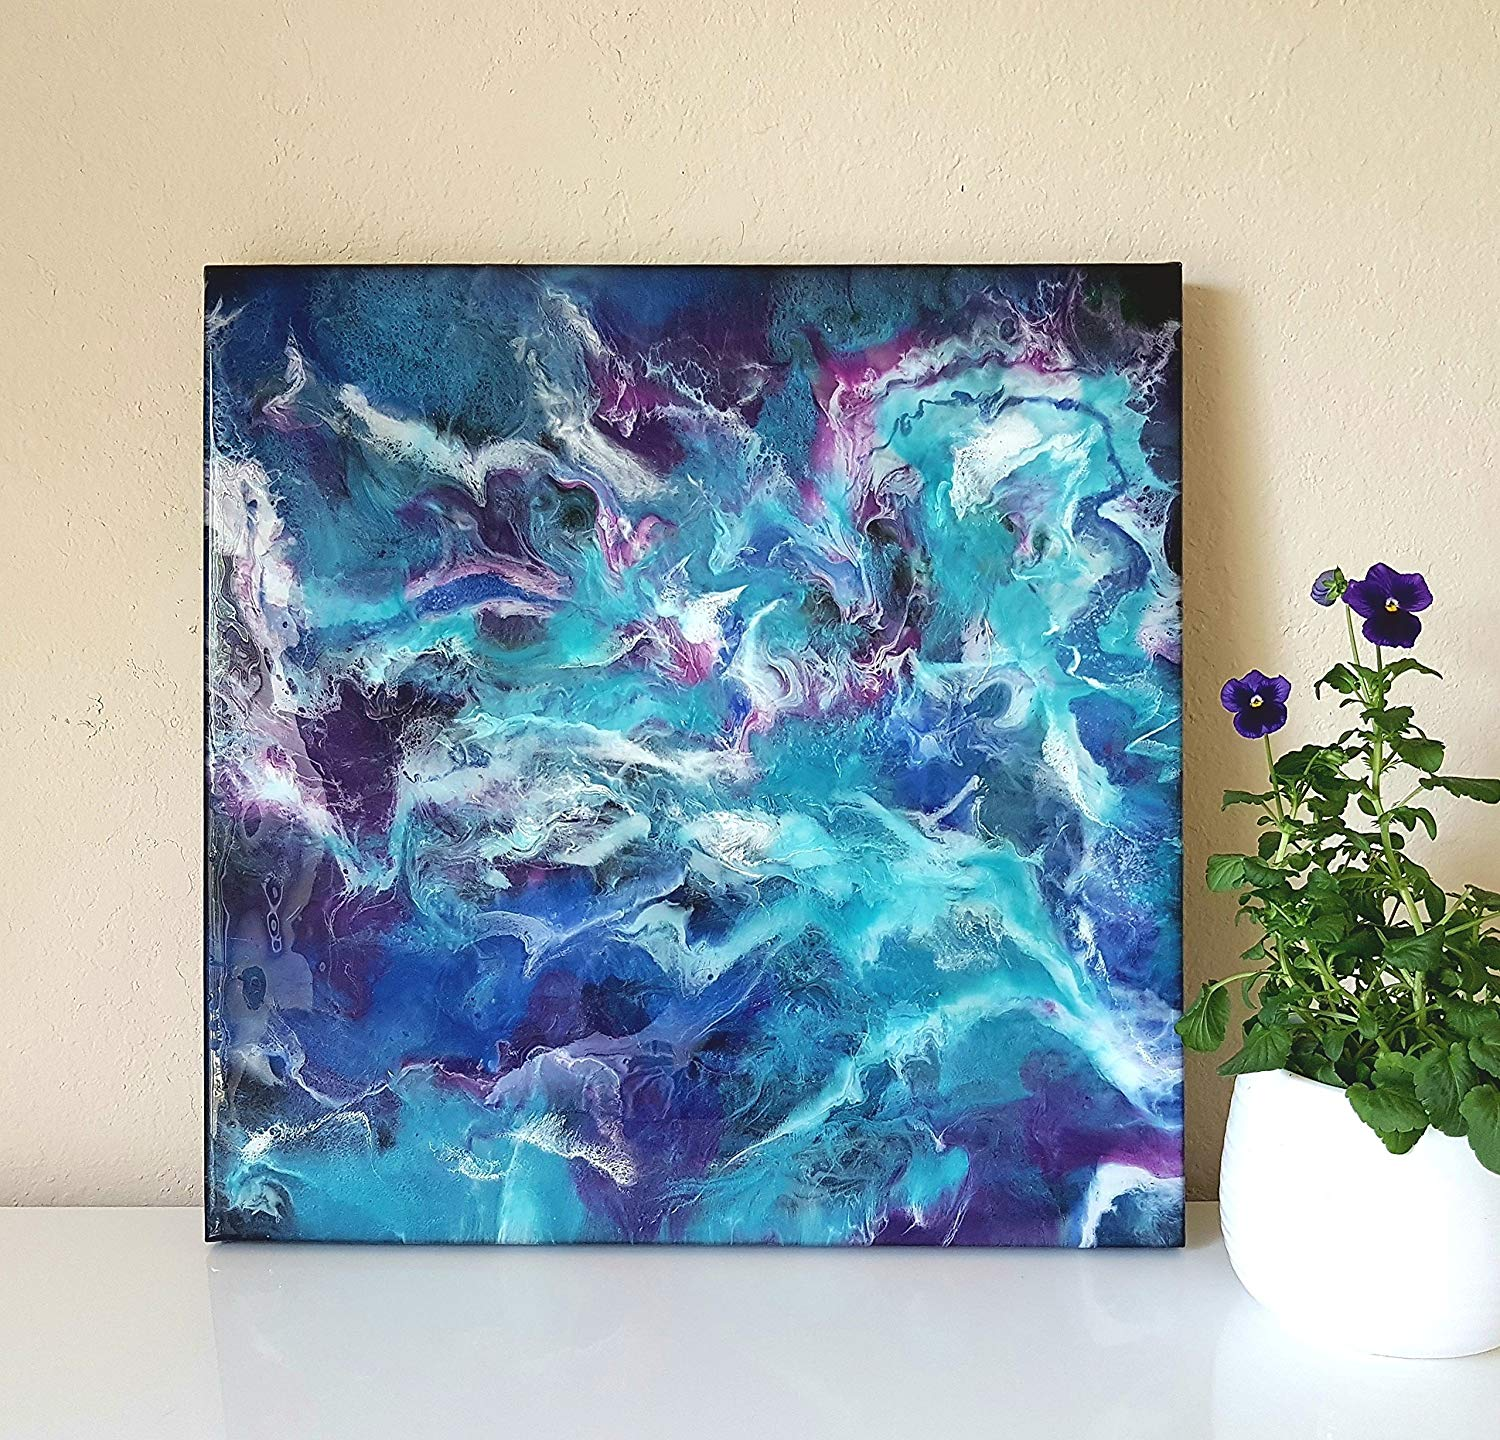 Buy Resin Abstract Painting 20x20 in, Resin art on canvas